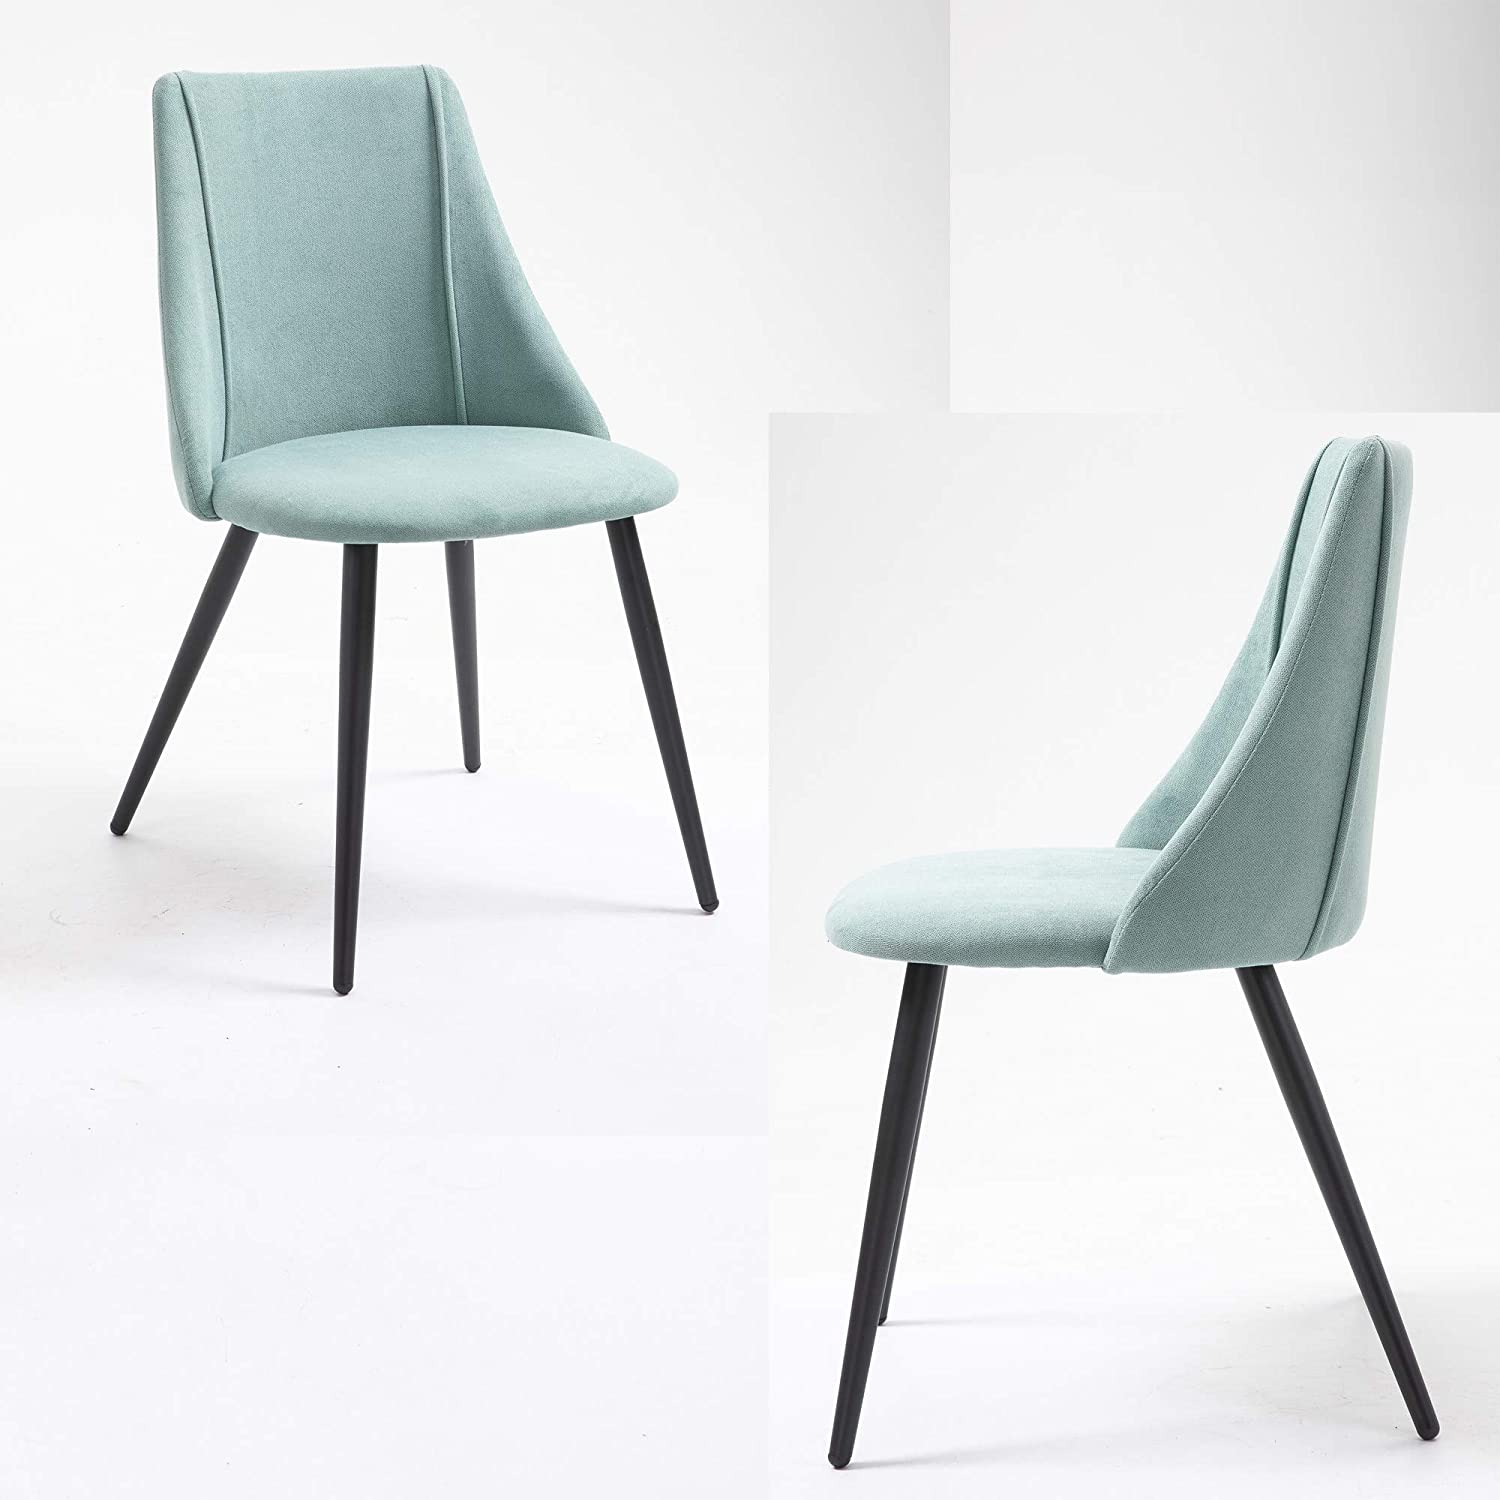 Kitchen Chairs Home Office Chair Set of 2 Modern Sturdy Dining Room Chairs with Fabric Cushion Seat Back, Mid Century Living Room Chairs with Black Metal Legs, Green